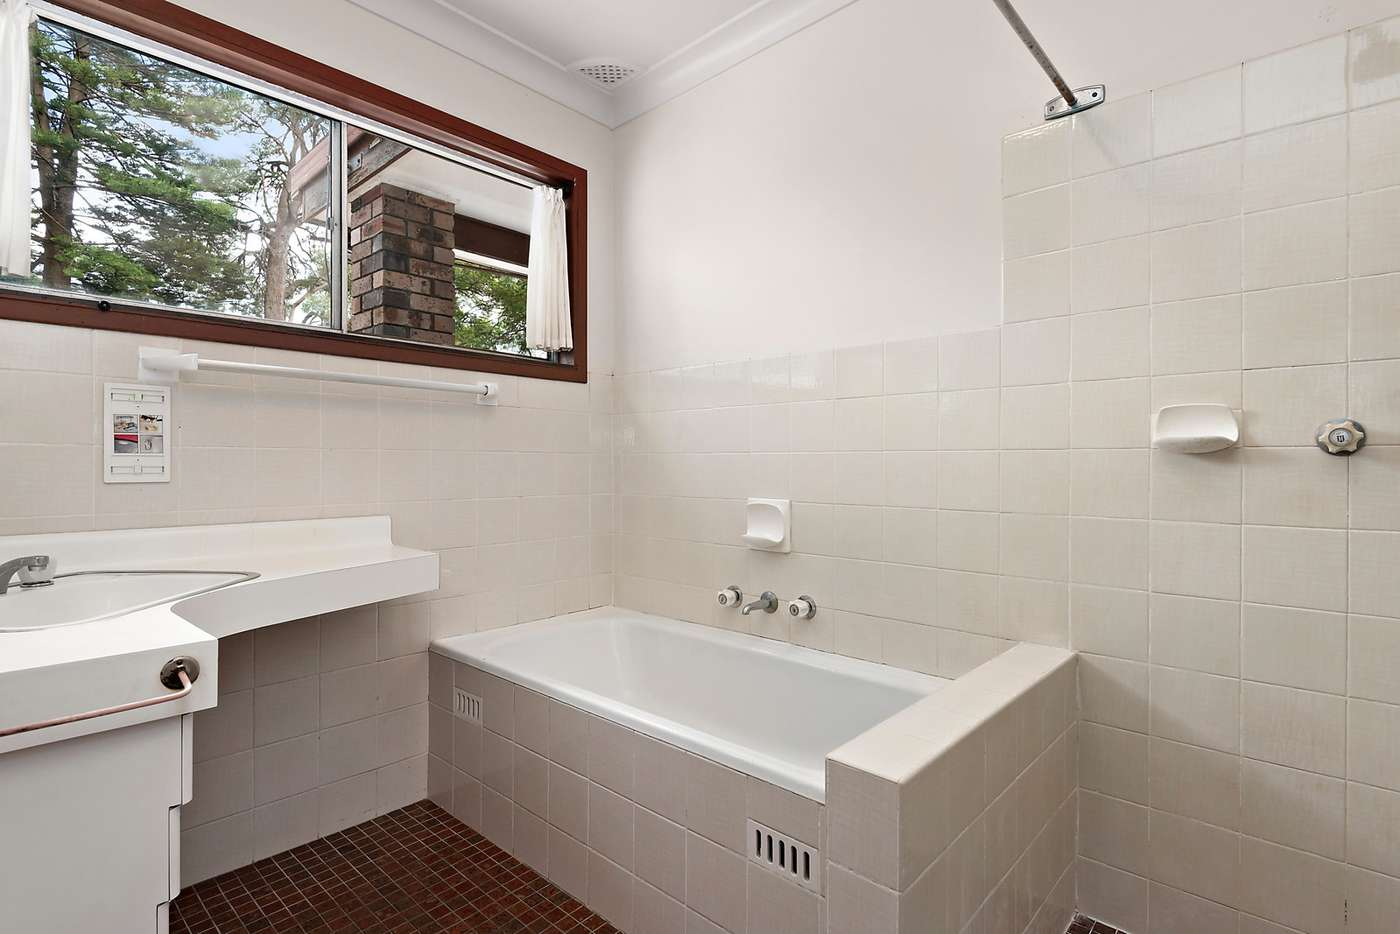 Sixth view of Homely house listing, 23 Forbes Crescent, Engadine NSW 2233